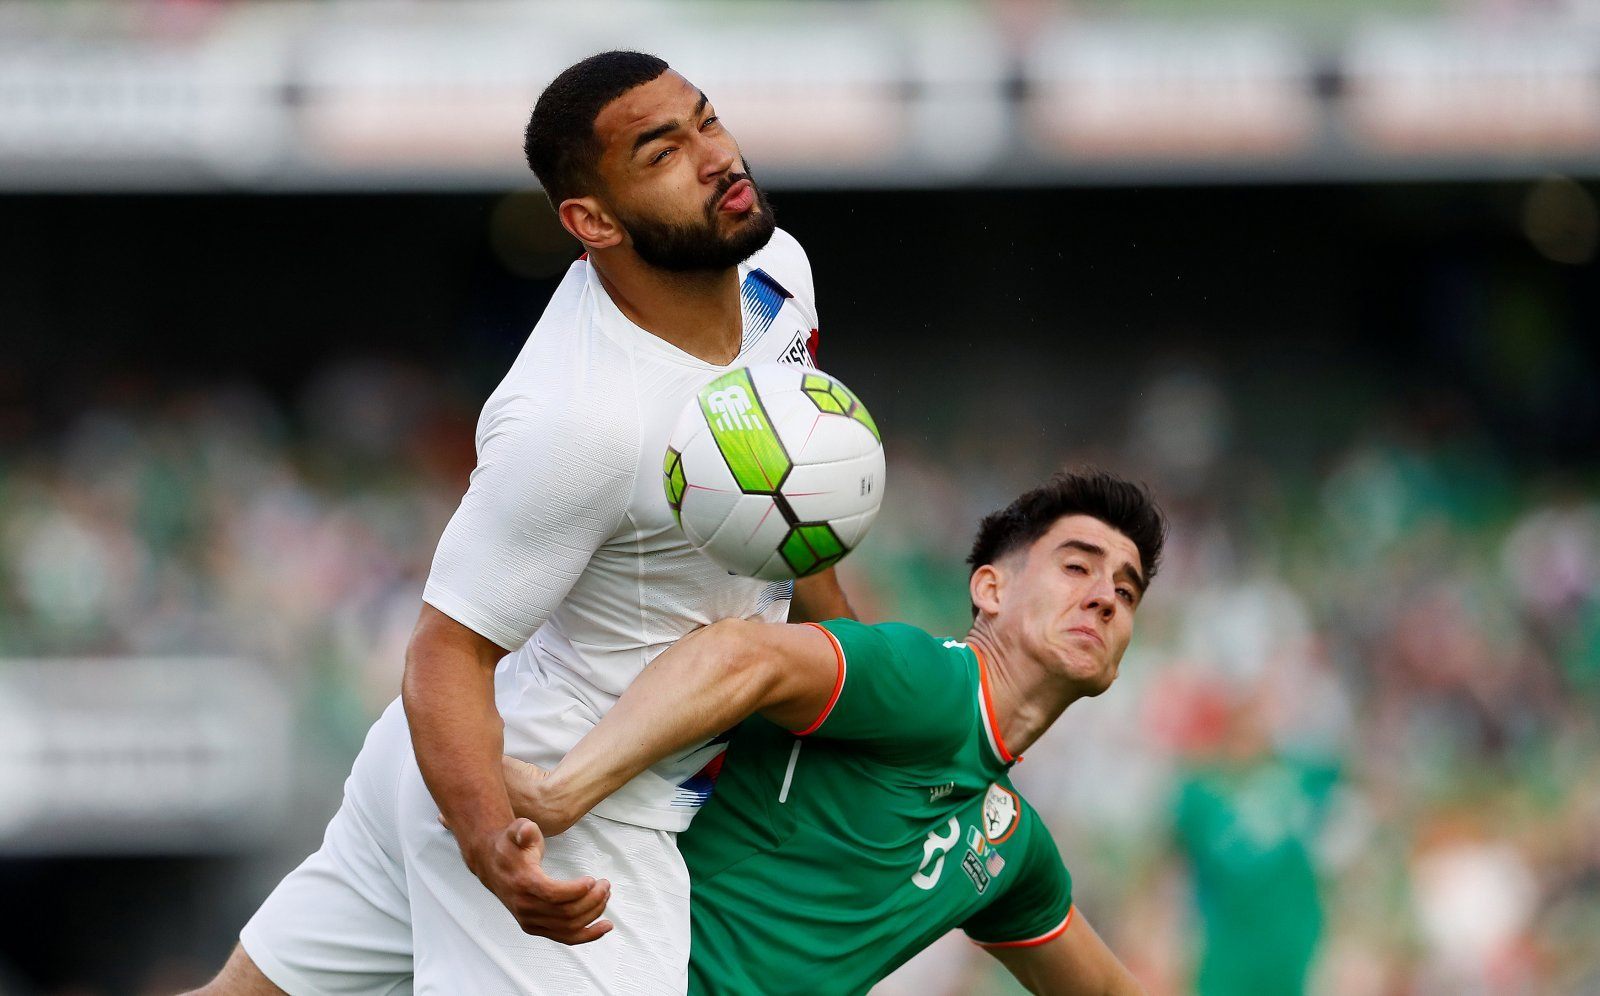 Loan deal for Cameron Carter-Vickers would fill void left by John Terry at Aston Villa